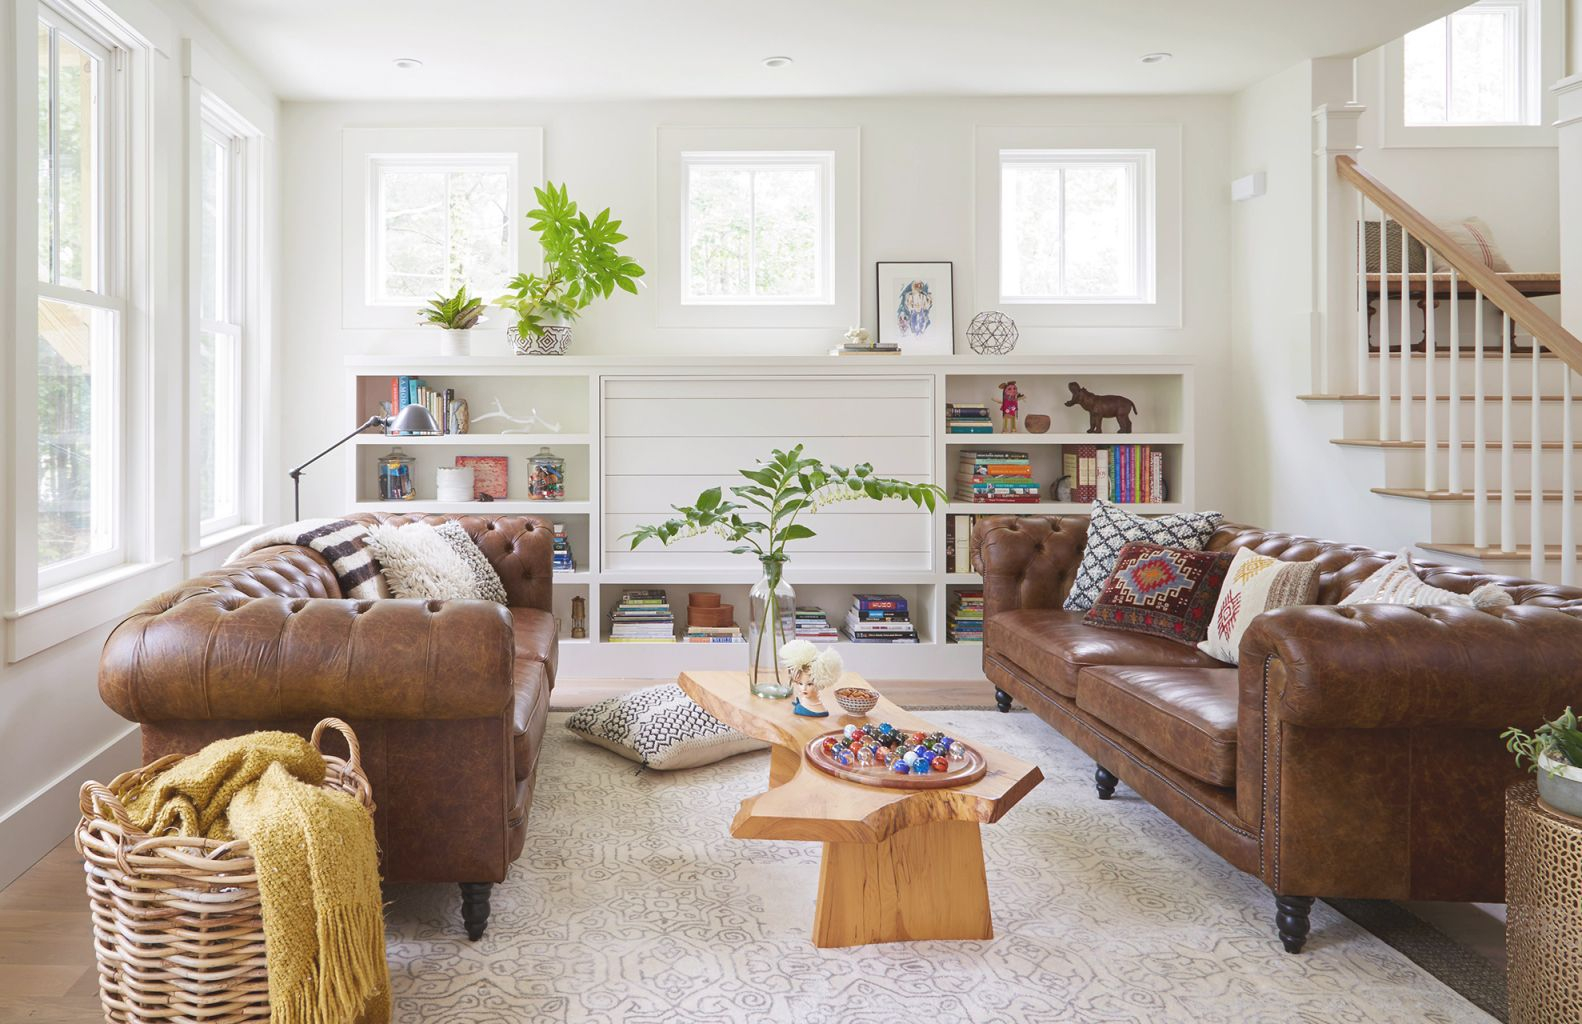 Living Room Decorating And Design | Better Homes & Gardens intended for Home Decorating Ideas Small Living Room